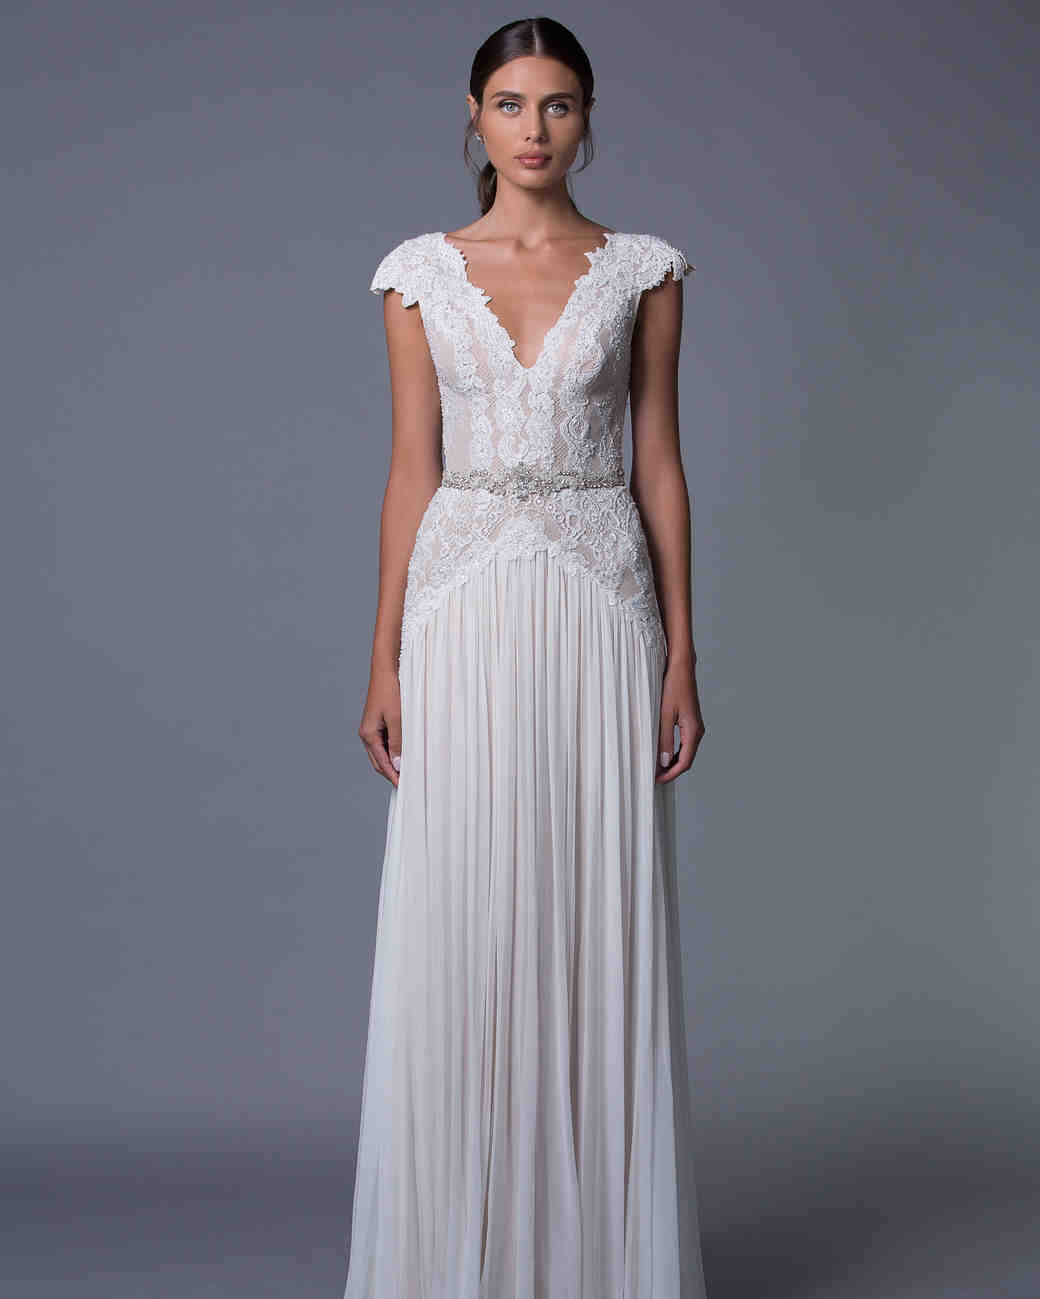 Lihi hod fall 2017 wedding dress collection martha for Dresses for fall wedding